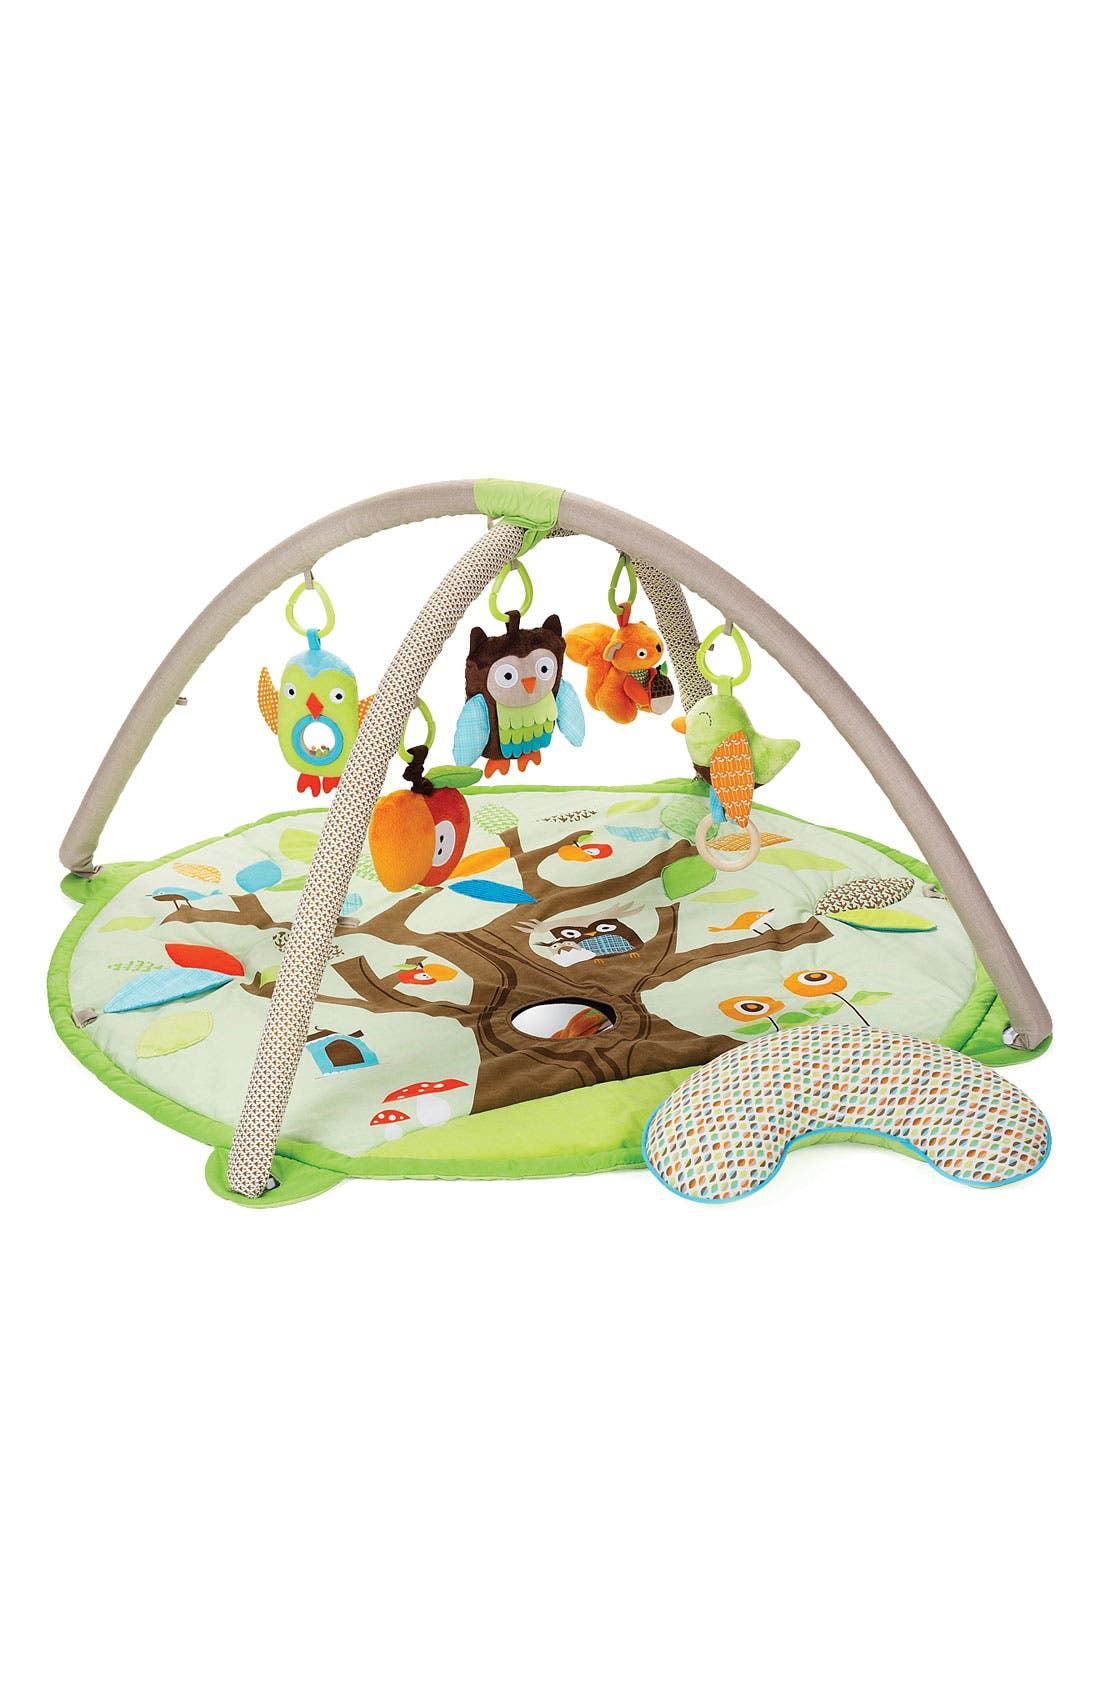 'Treetop Friends' Activity Gym,                             Main thumbnail 1, color,                             MULTI